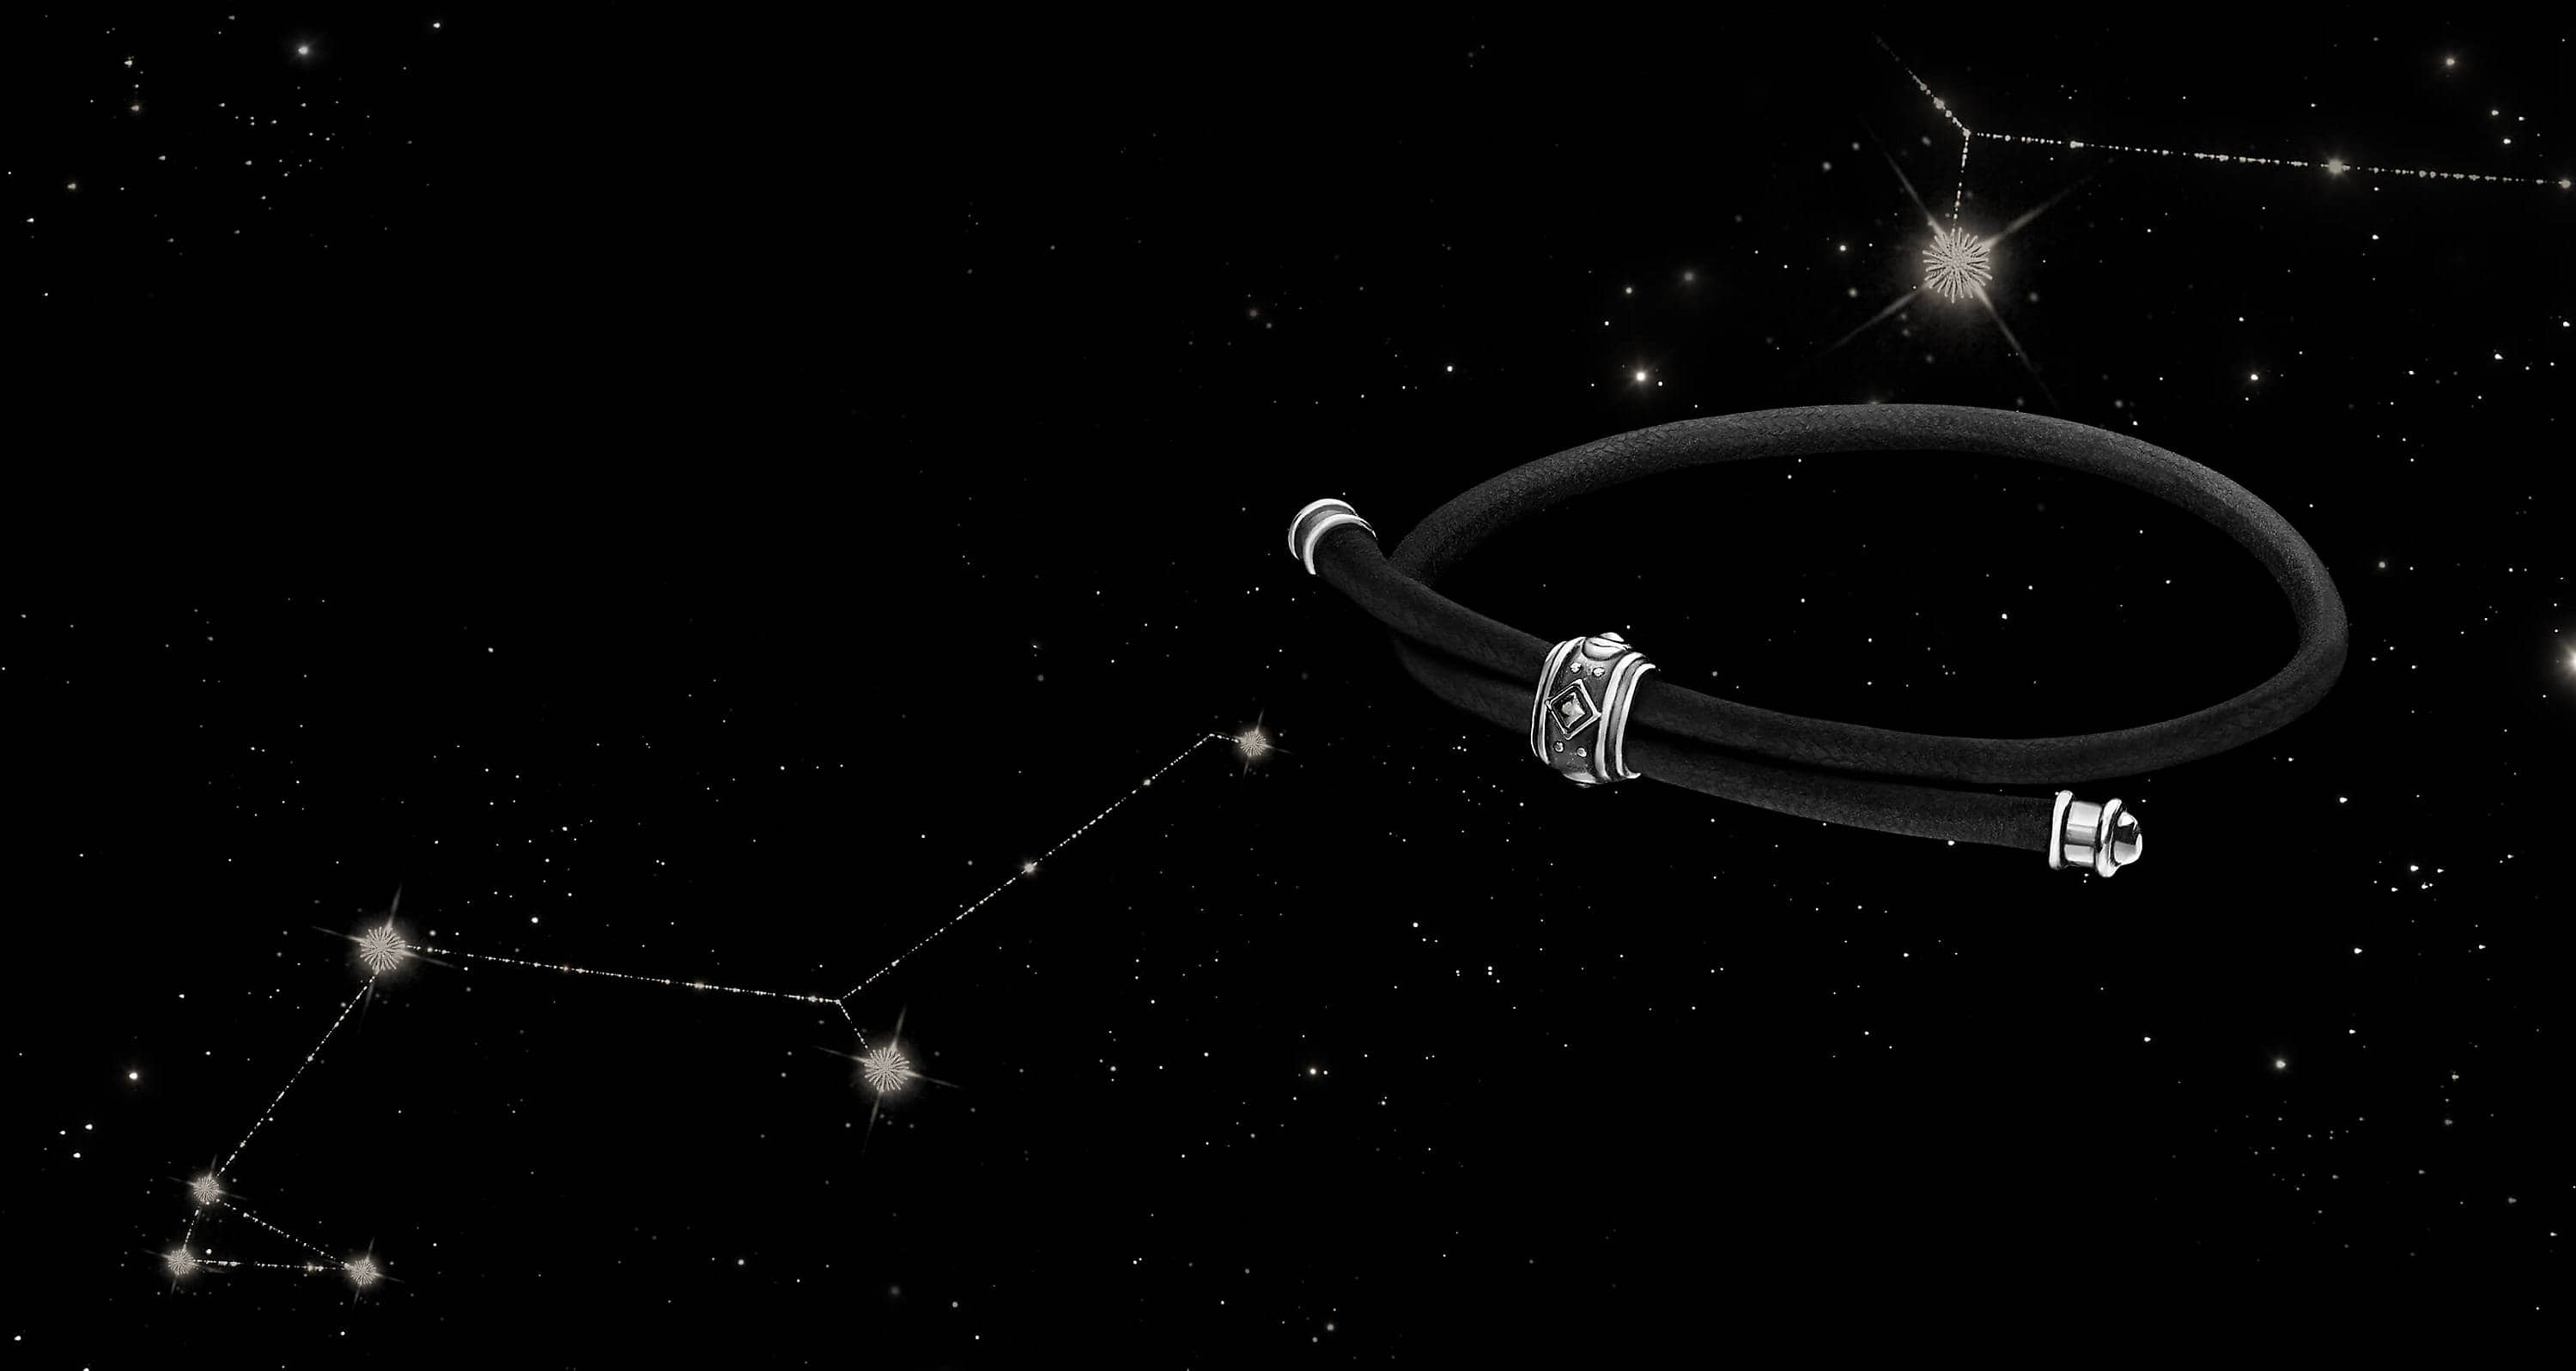 A color photo shows a Renaissance corded bracelet floating on a white cloud in a starry night sky.